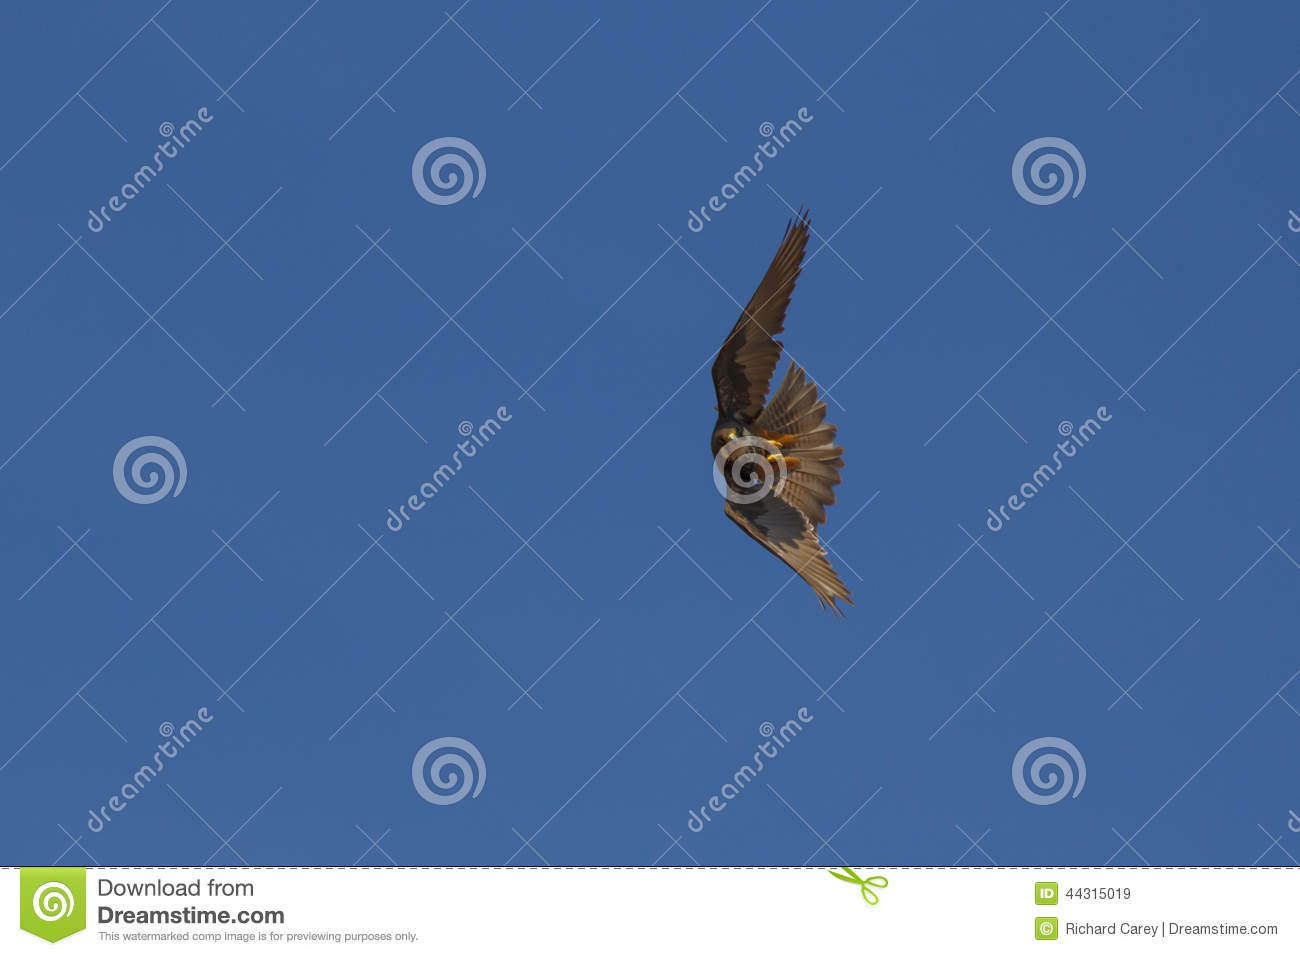 Flying Falcon Stock Photo - Image: 44315019